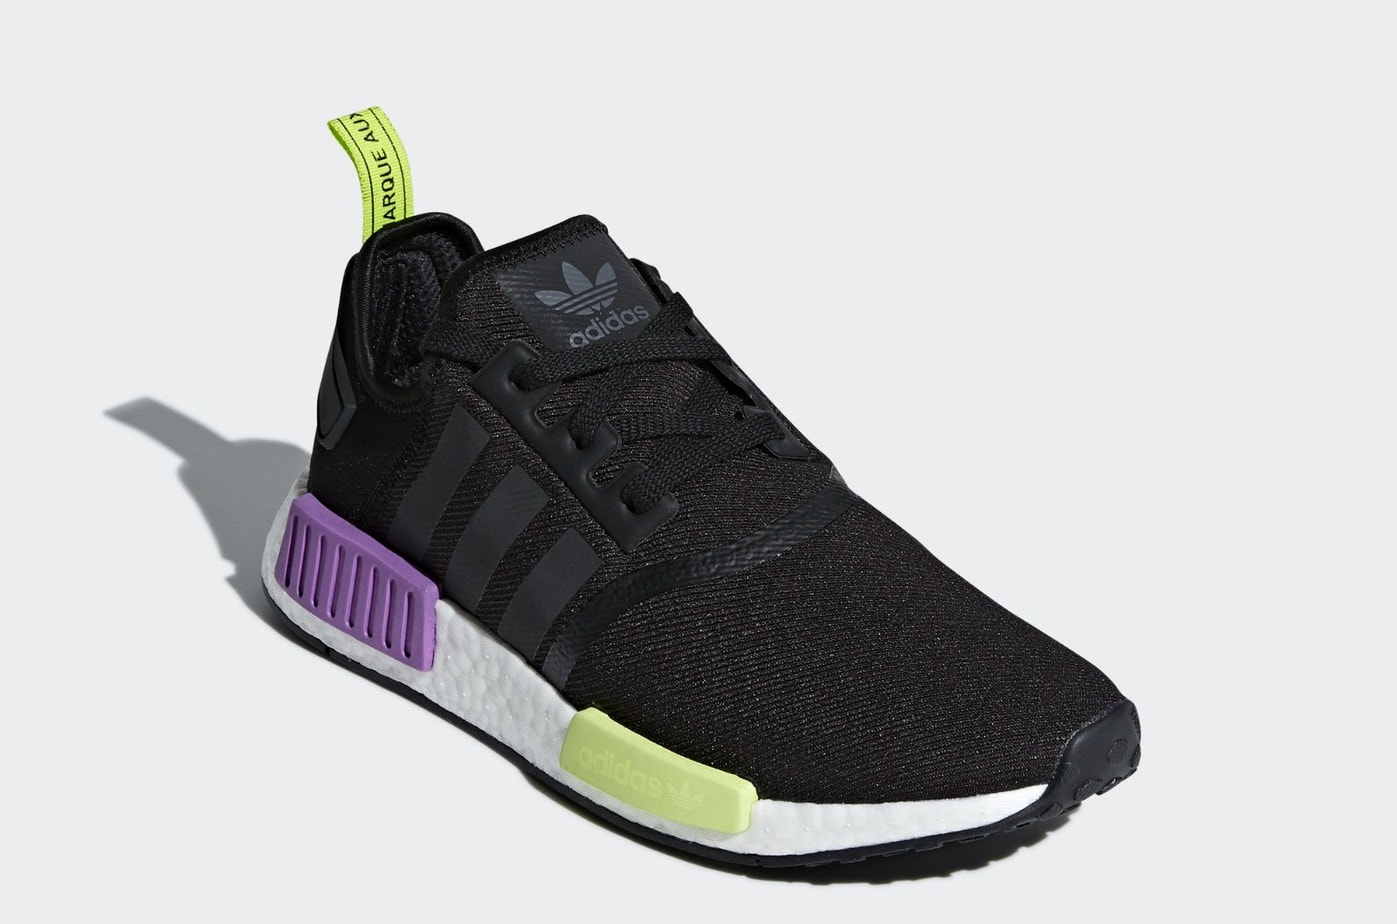 buy popular 6f1c9 4b79f The adidas NMD franchise has taken on plenty of new looks and colorways  since it s 2015 release. Now, adidas is taking a slightly newer approach to  the ...